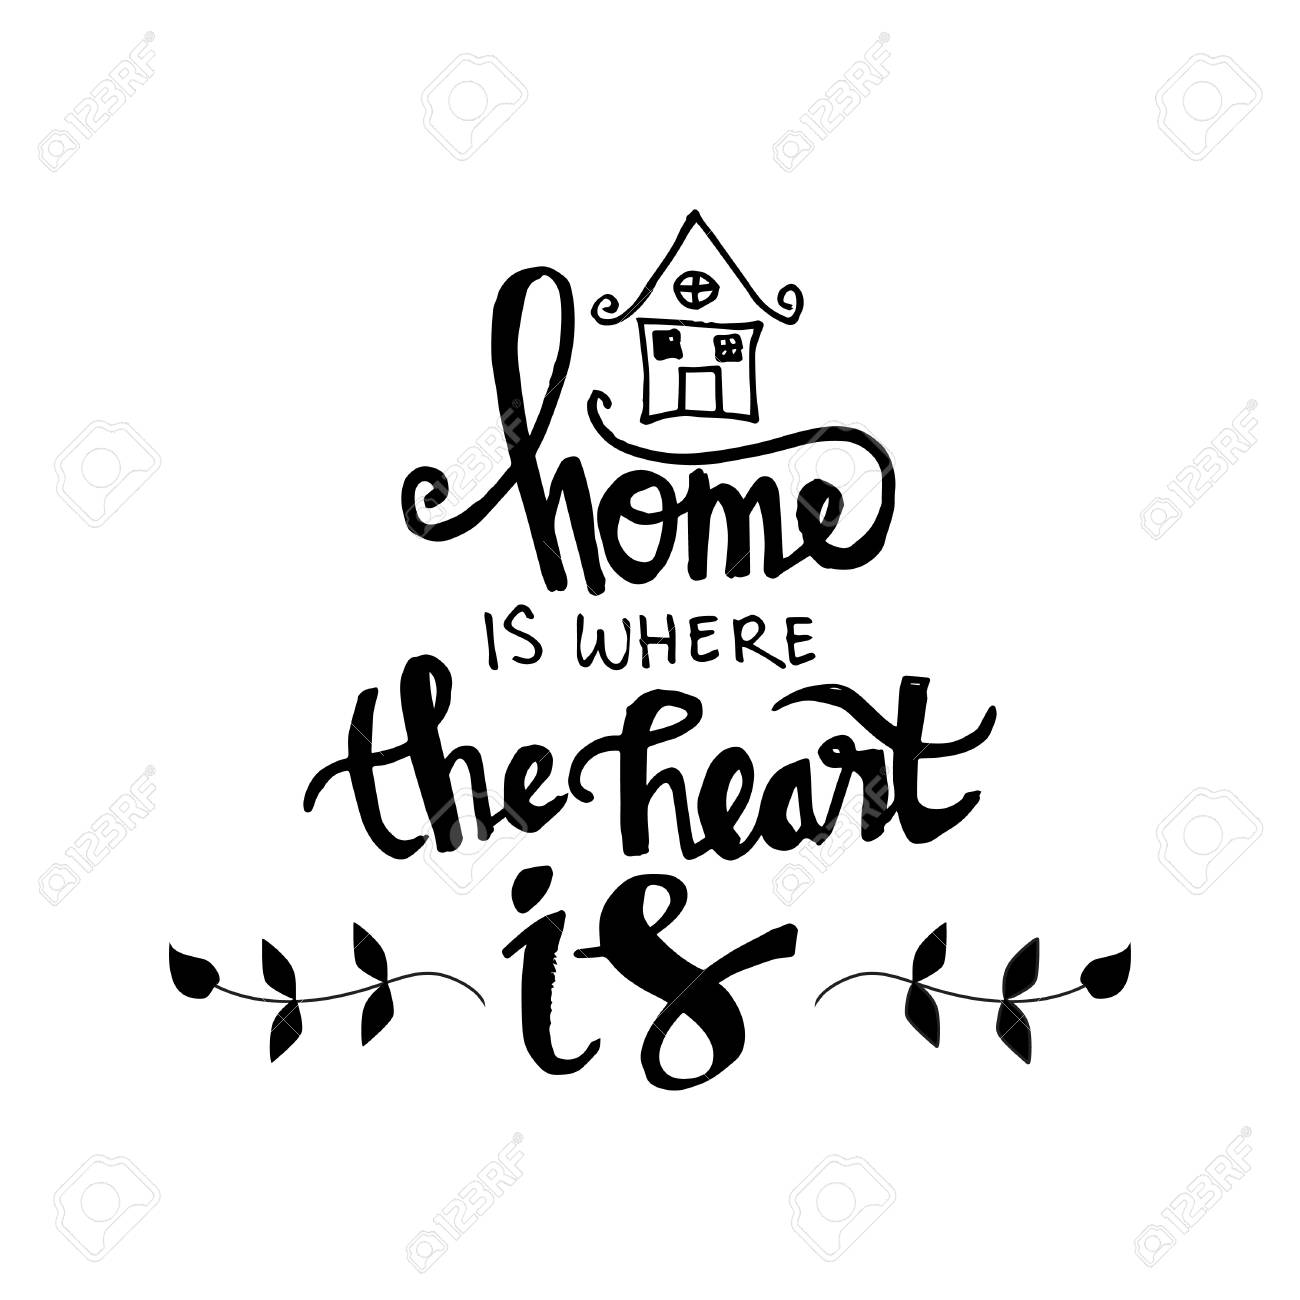 Home is where your heart is Inspirational quote isolated on plain...